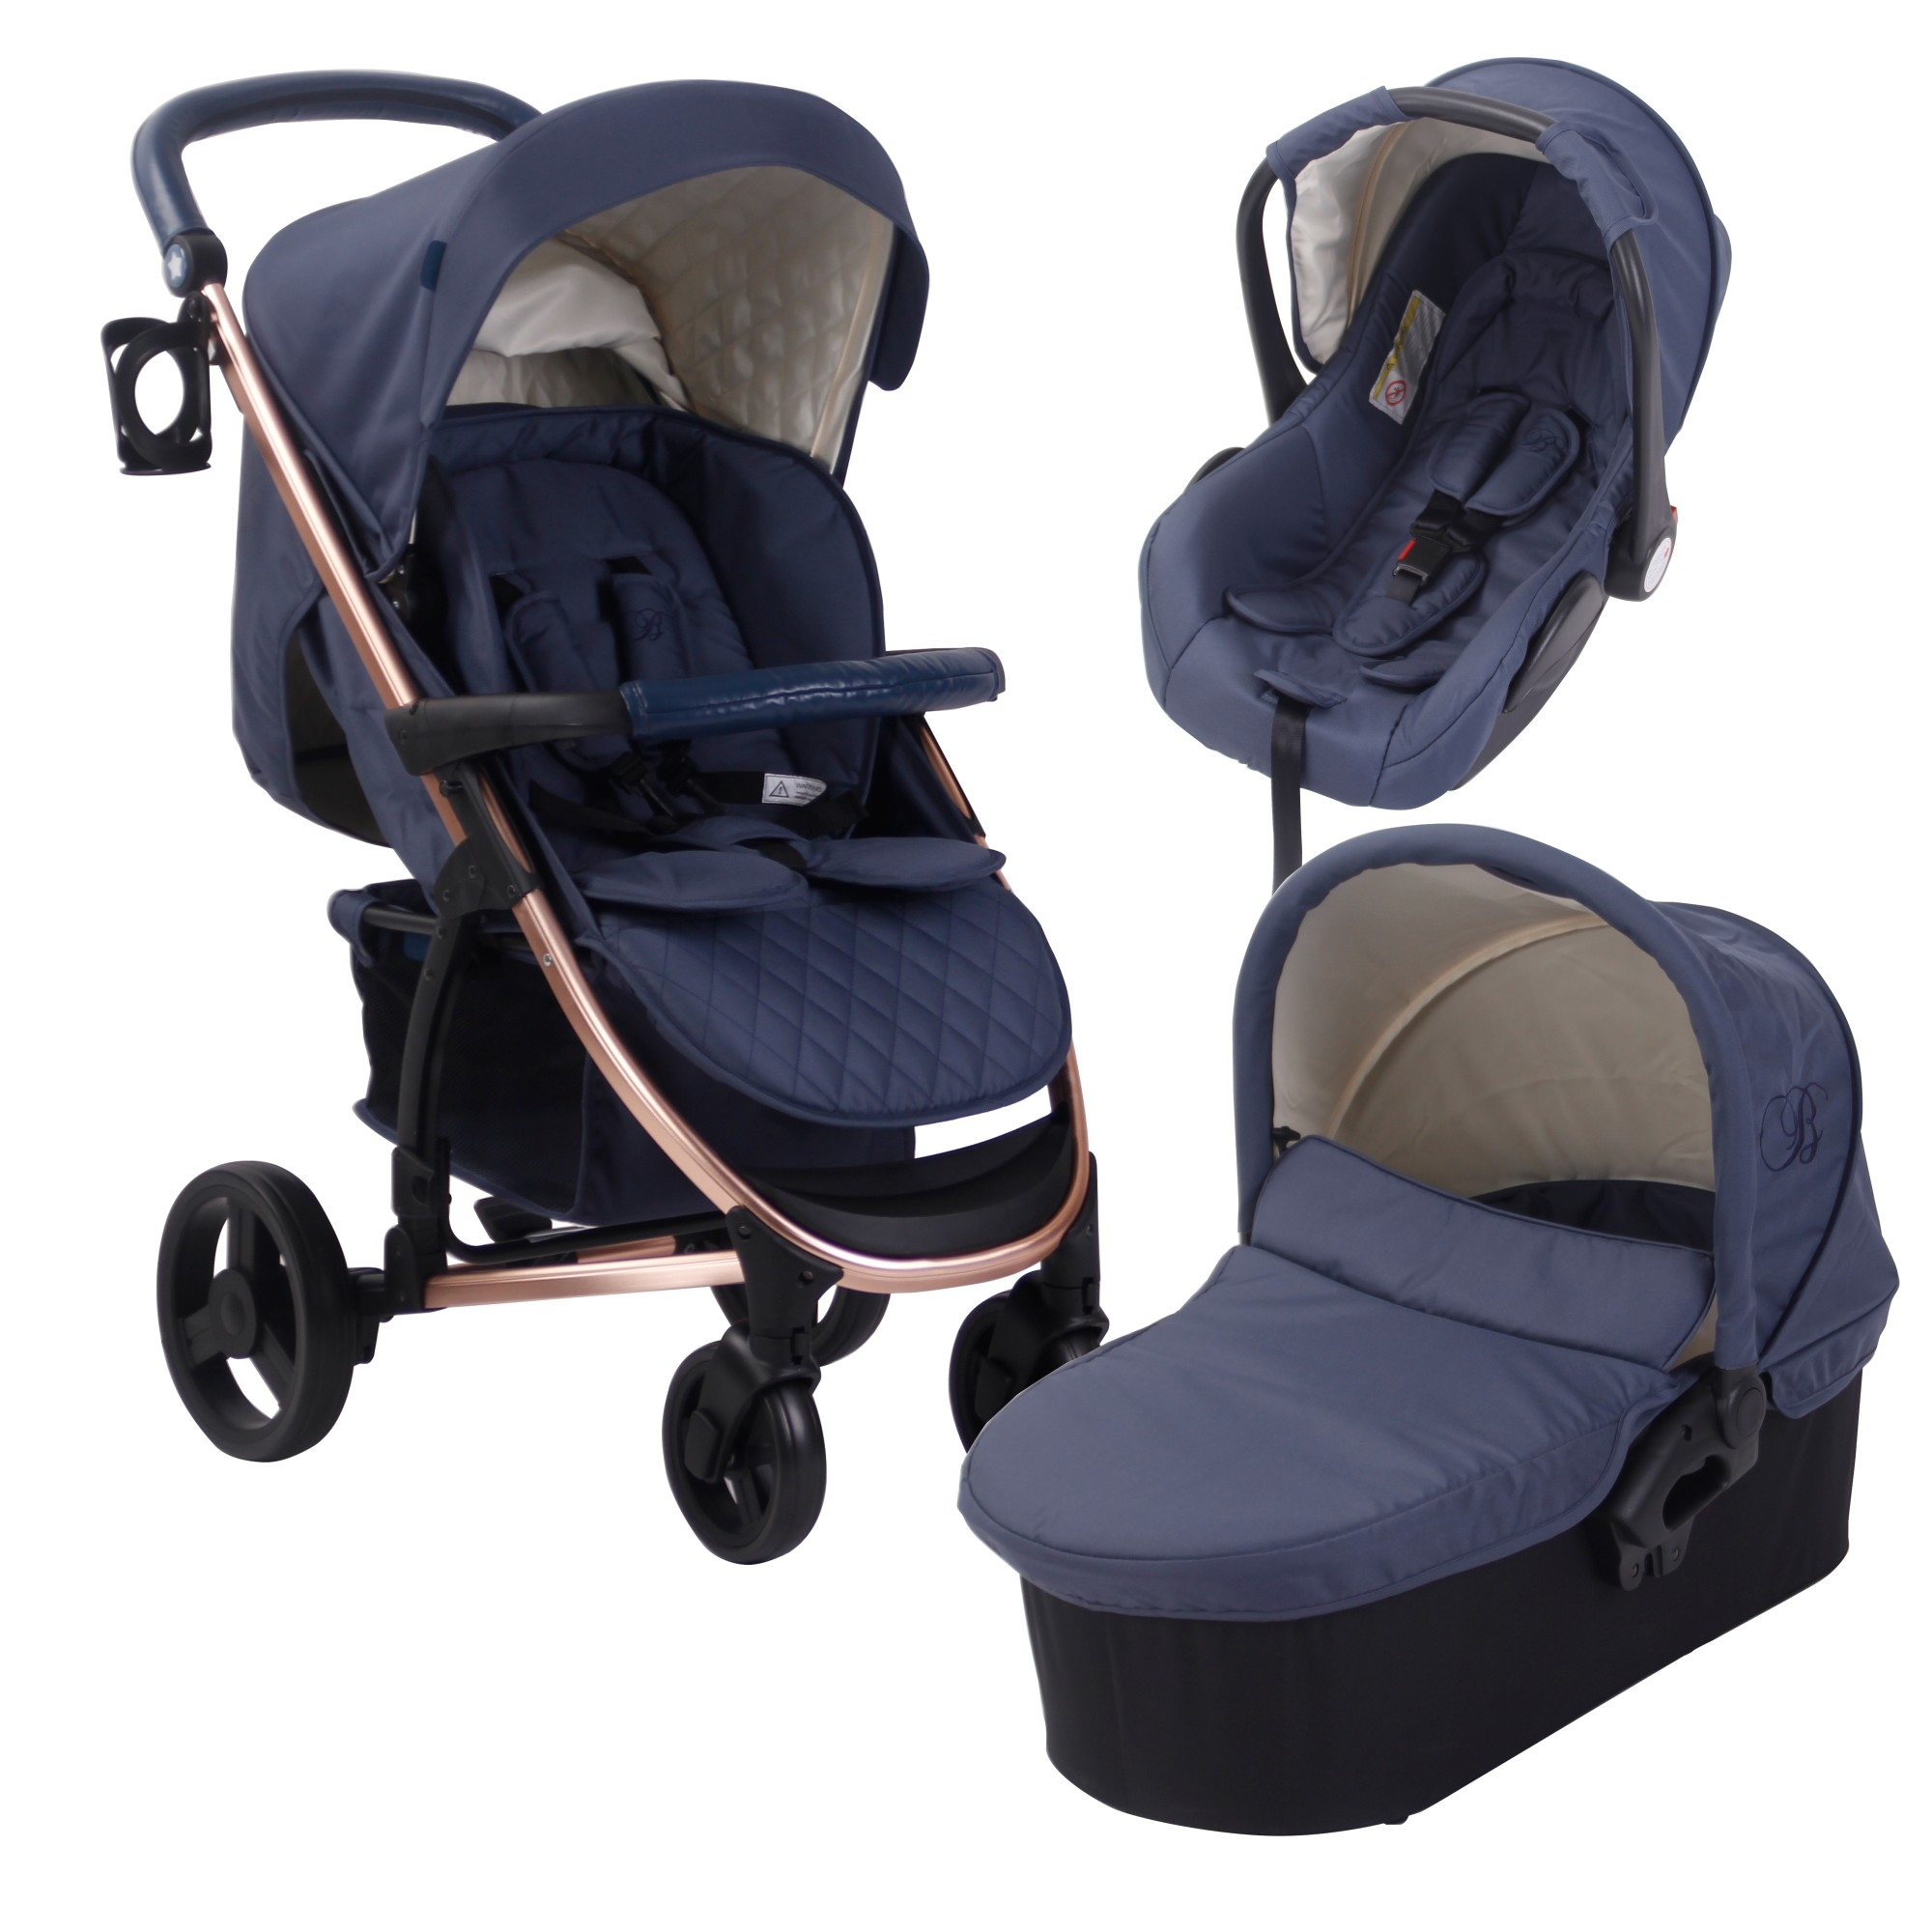 Stroller Travel System Ebay Details About My Babiie Mb200 Baby Child Travel System Billie Faiers Rose Gold Navy